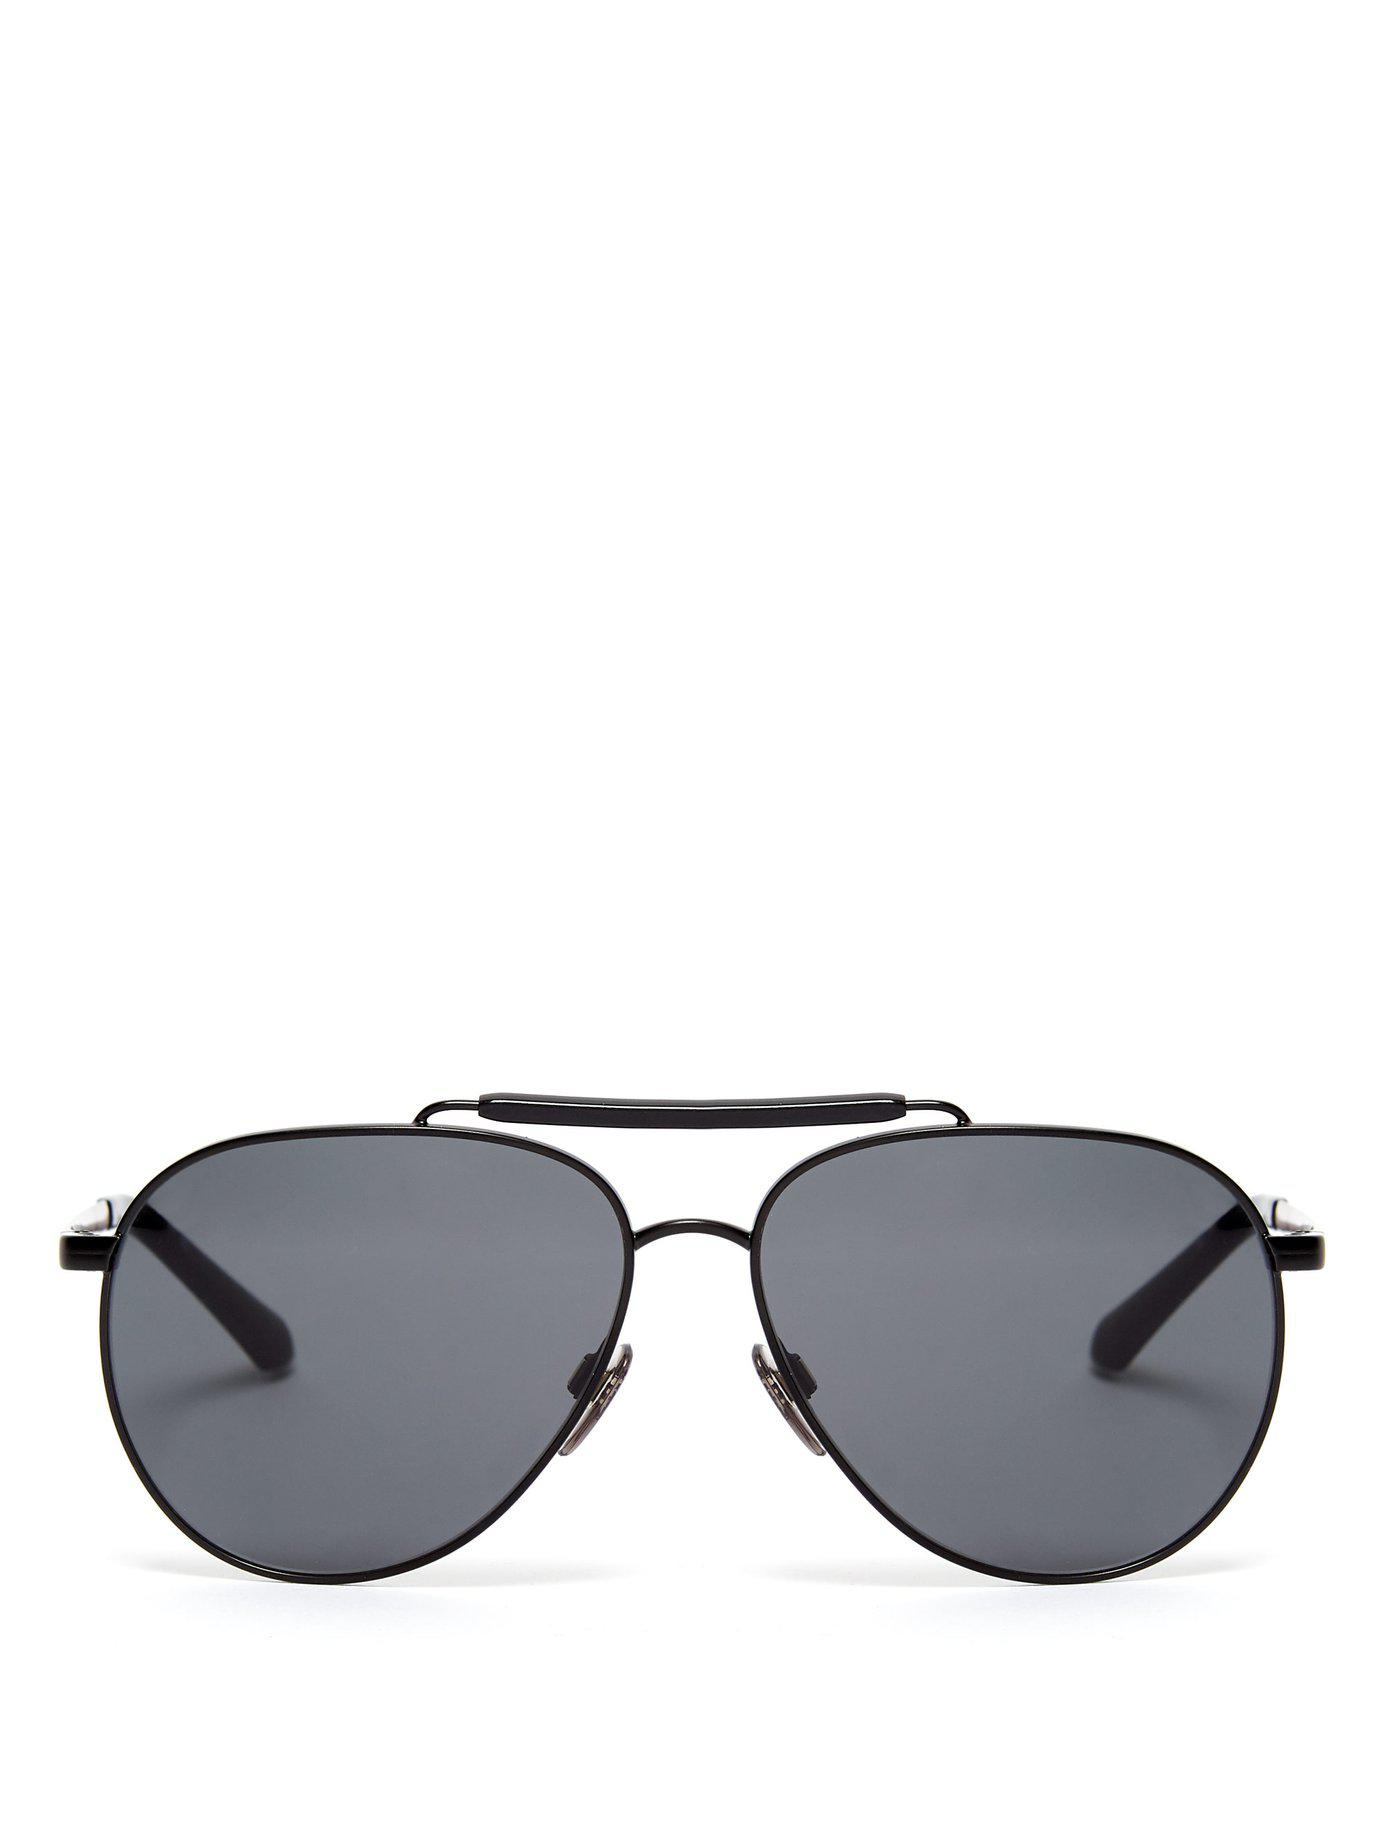 59aabdf4de82 Lyst - Burberry Milton Aviator Sunglasses in Black for Men